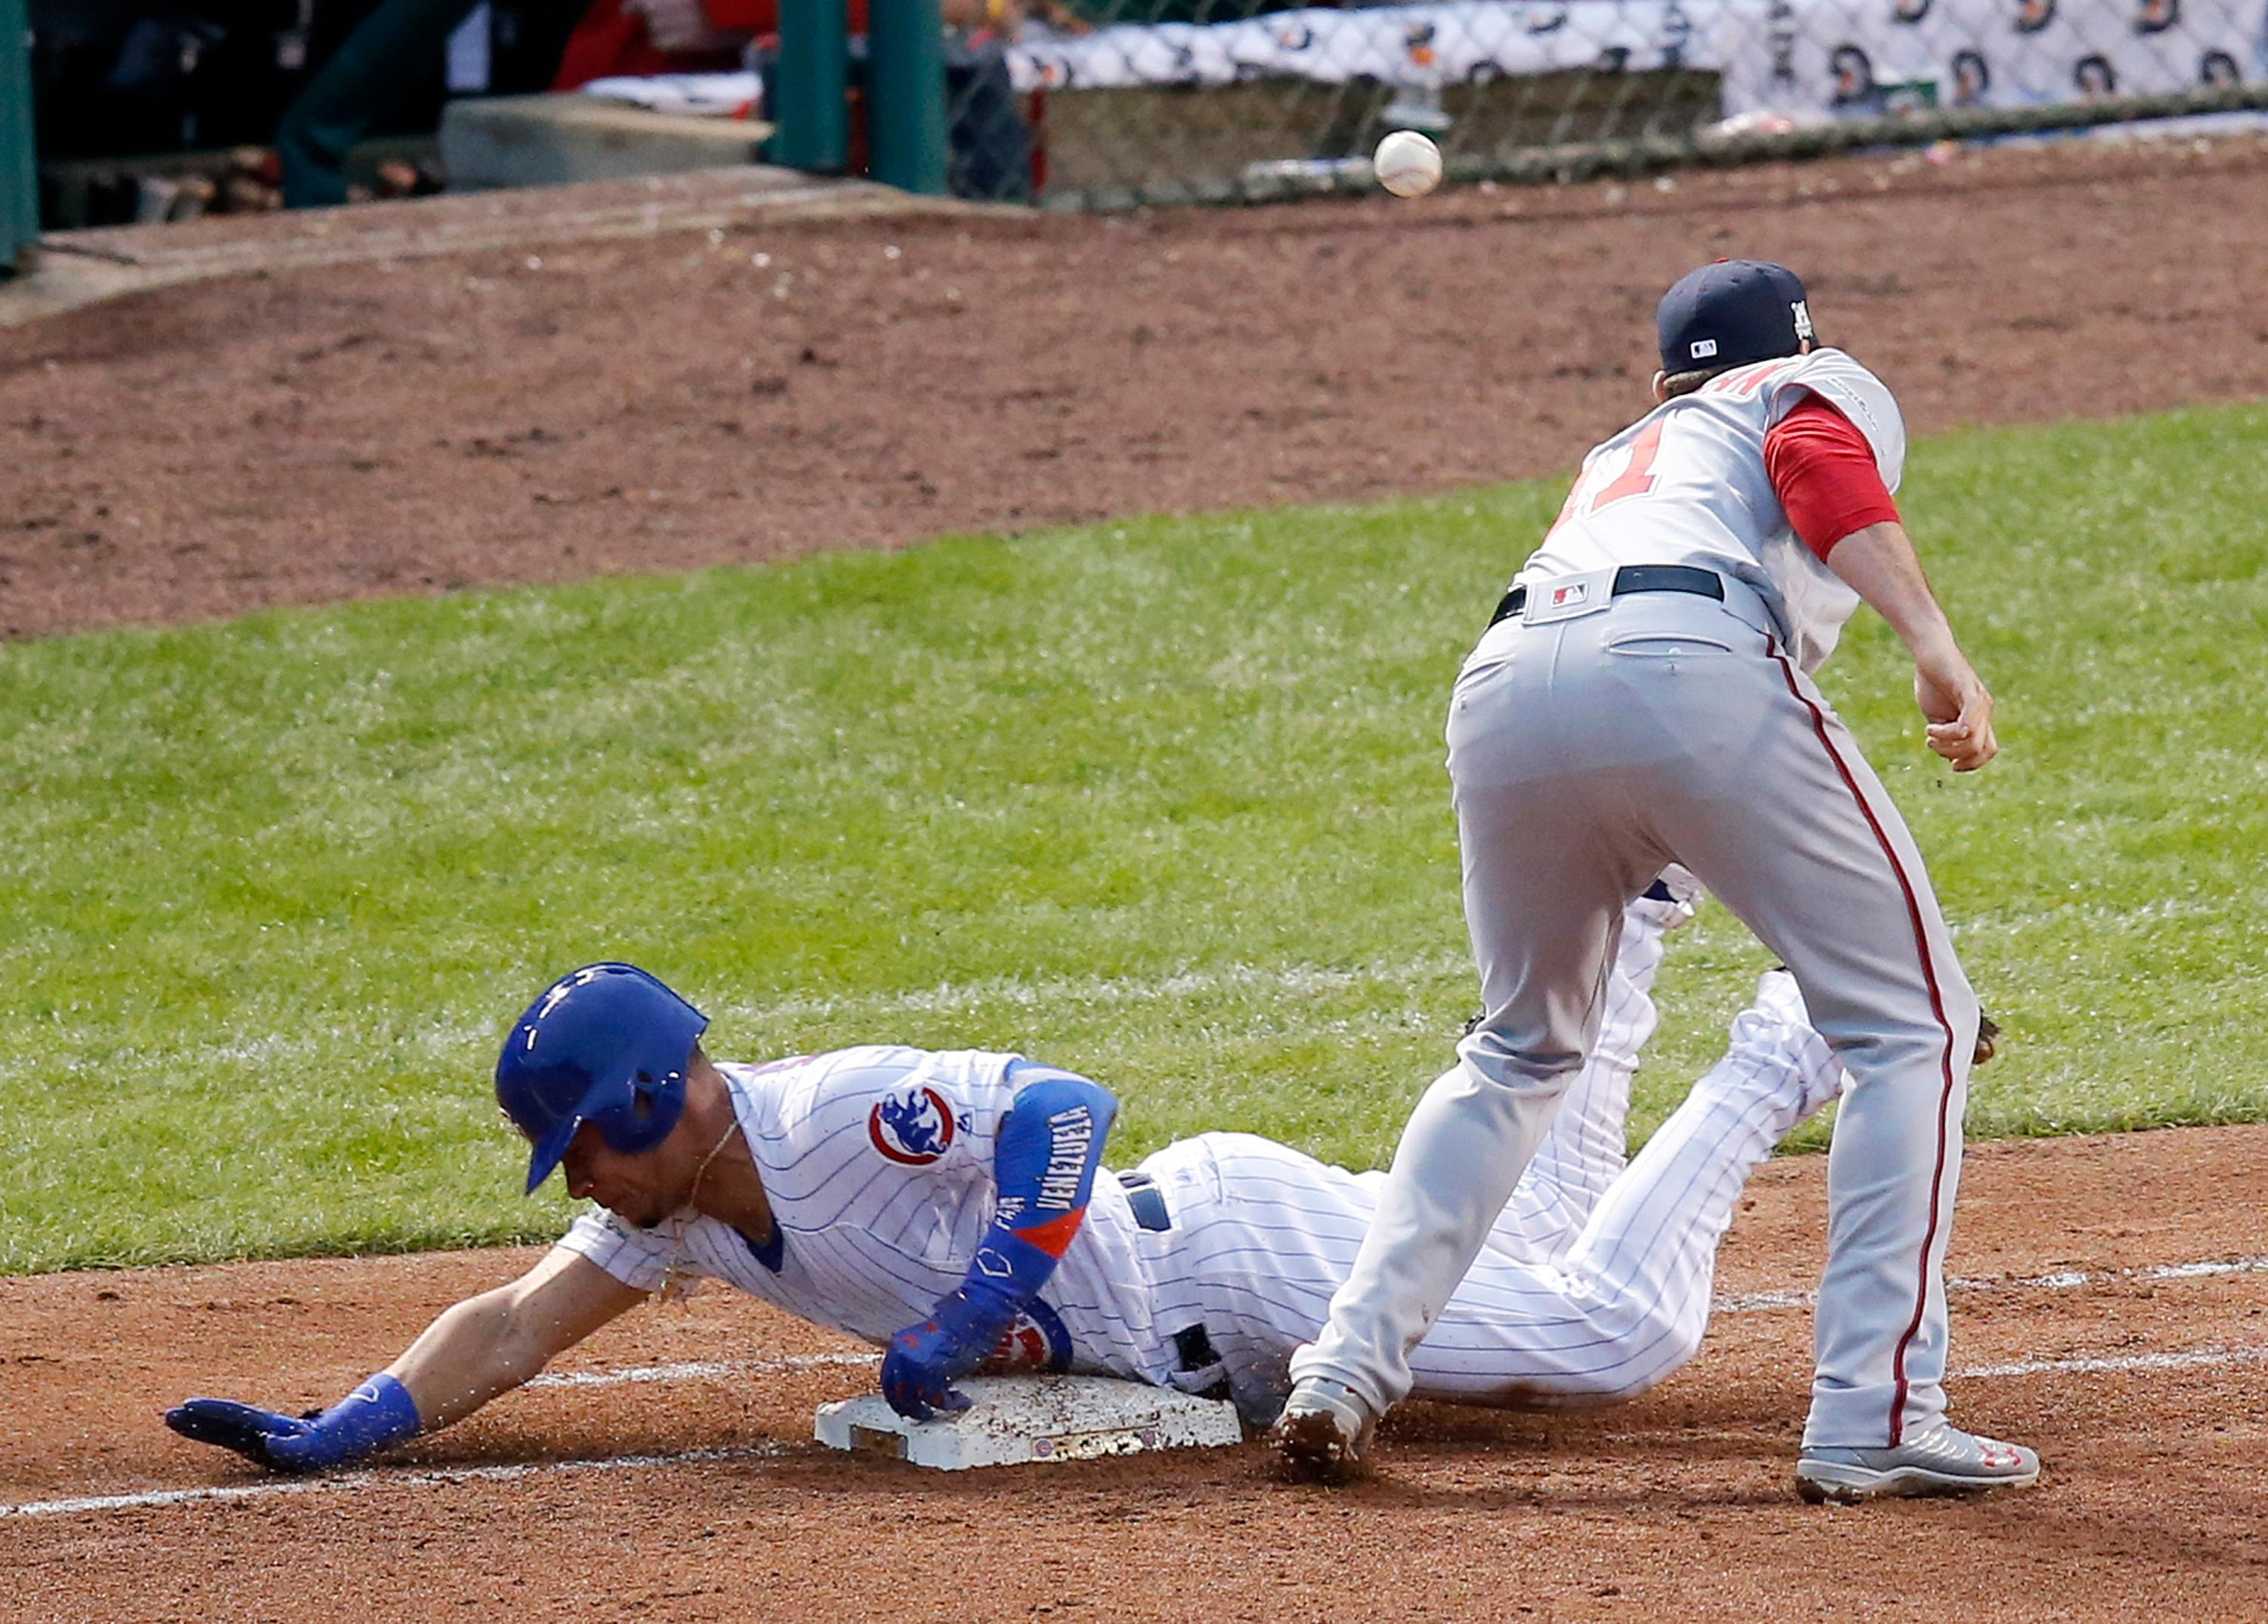 Chicago Cubs' Willson Contreras slides safely to first against Washington Nationals first baseman Ryan Zimmerman (11) and advances to second on a throwing error by Washington Nationals pitcher Stephen Strasburg during the fourth inning of Game 4 of baseball's National League Division Series, Wednesday, Oct. 11, 2017, in Chicago. (AP Photo/Charles Rex Arbogast)